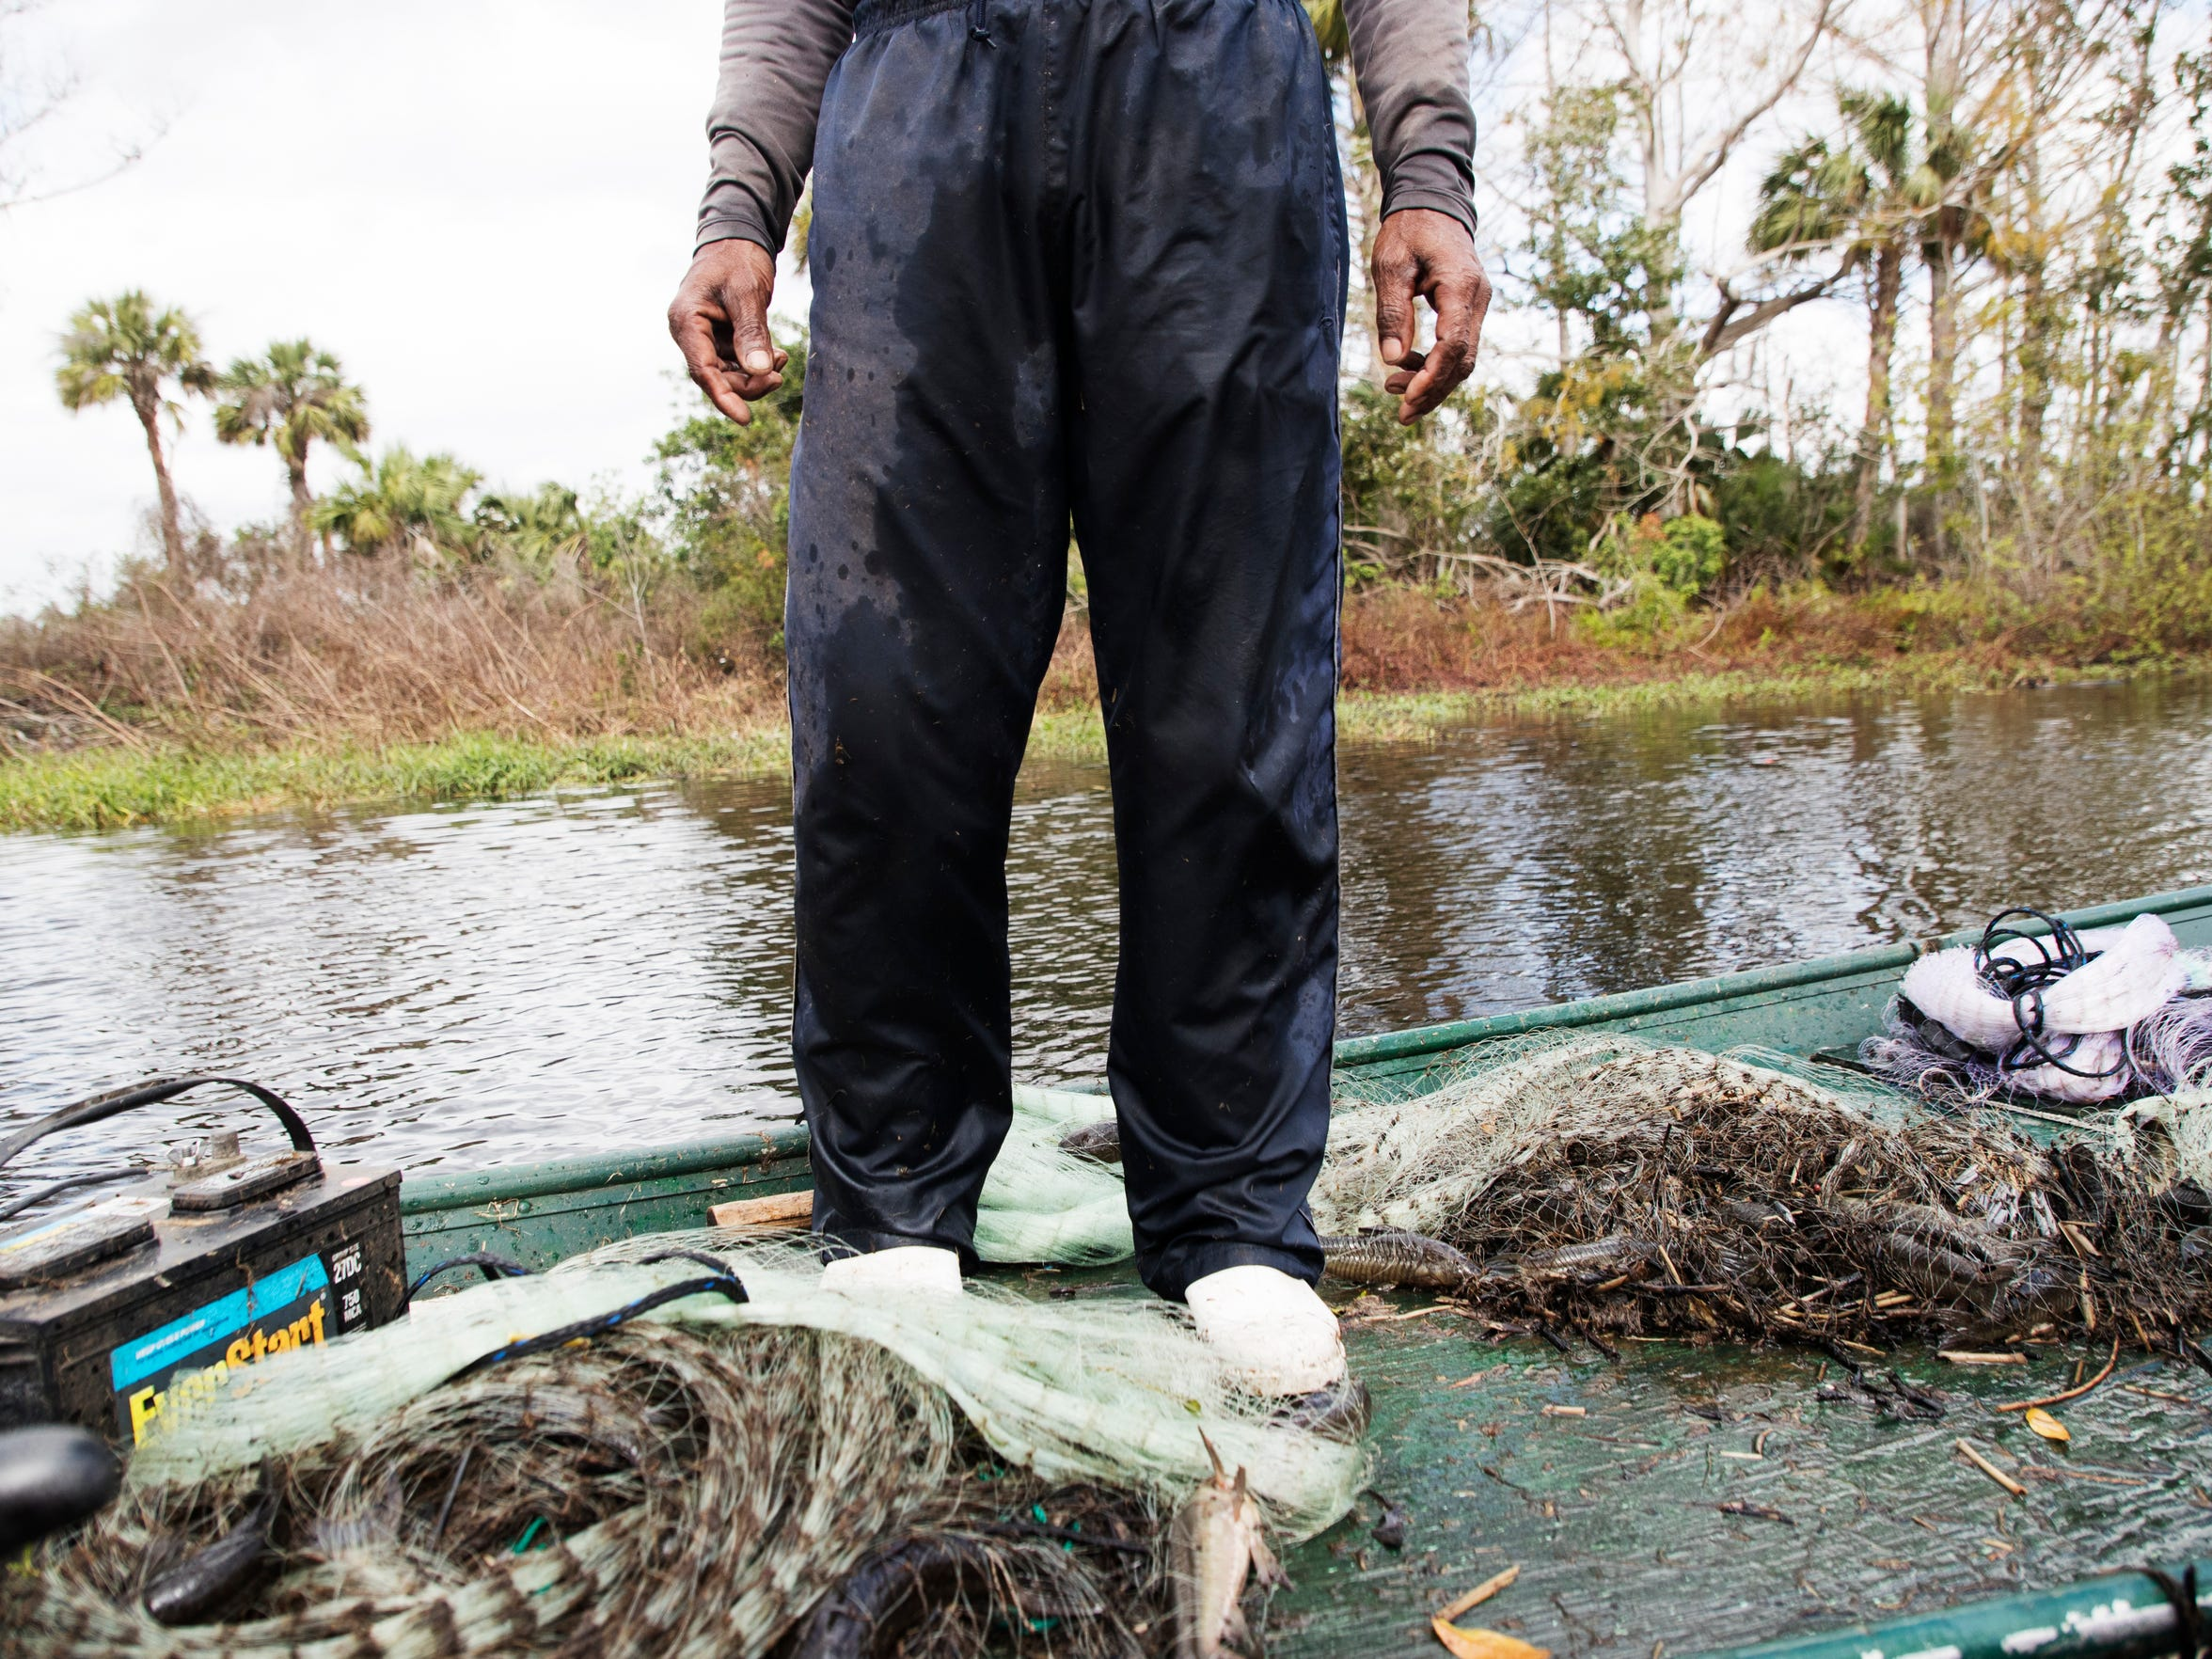 Krishna Jamon castnets for armored catfish on the restored part of Kissimmee River in early February.